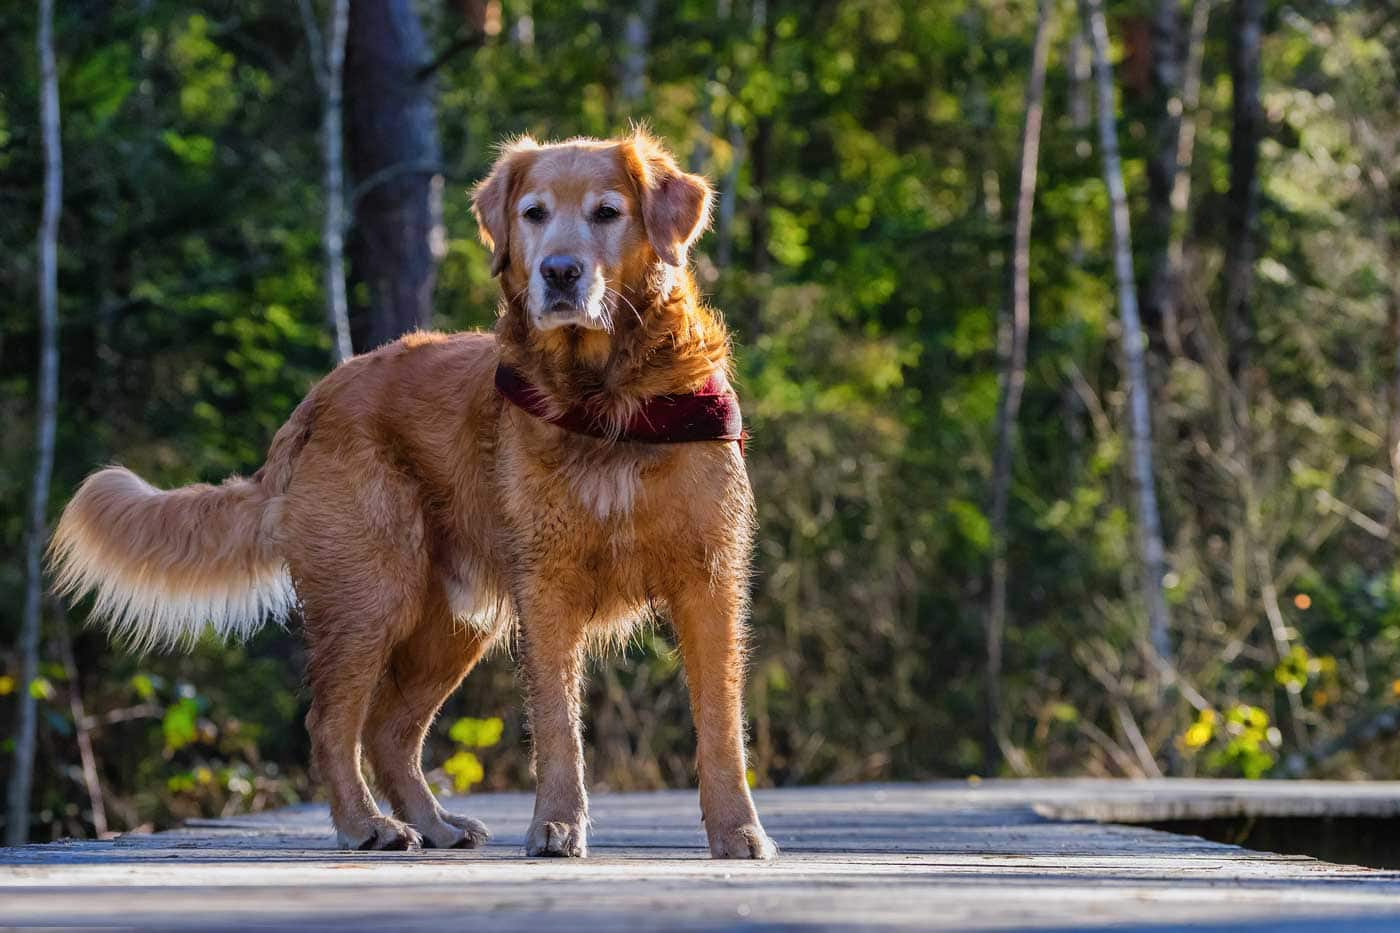 Losing a canine adventure partner - dog on a dock